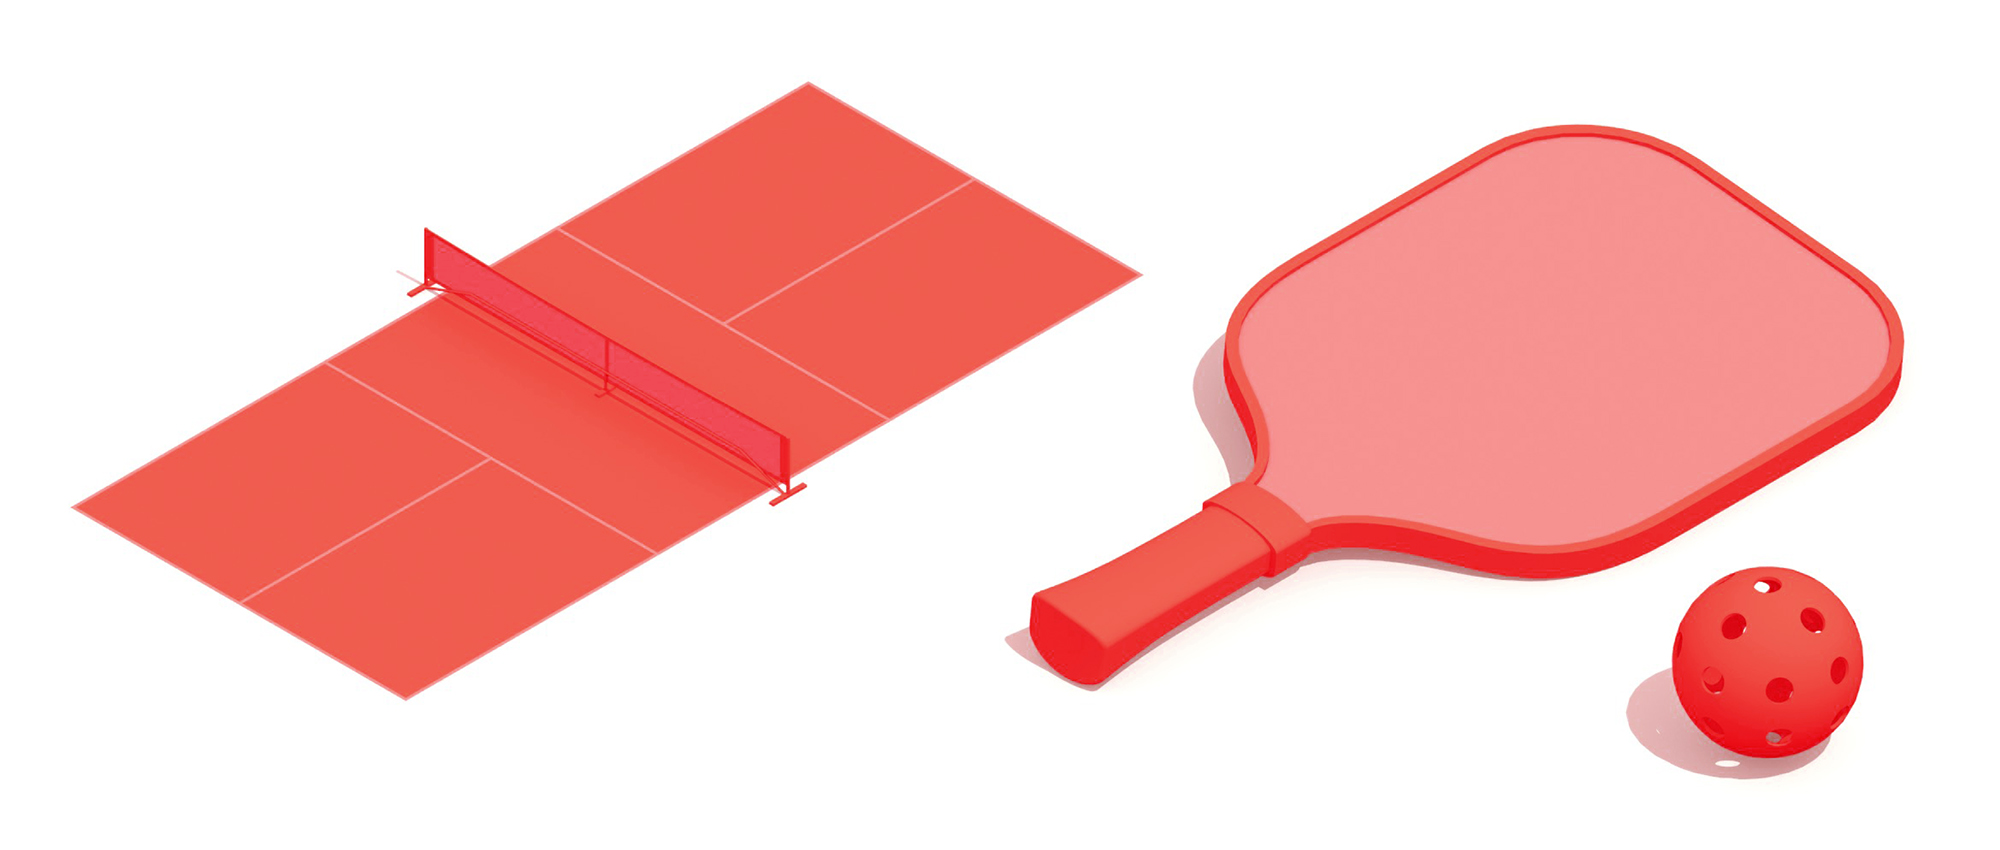 3D collection of the elements of pickleball including the pickleball court, pickleball racket, and pickleball